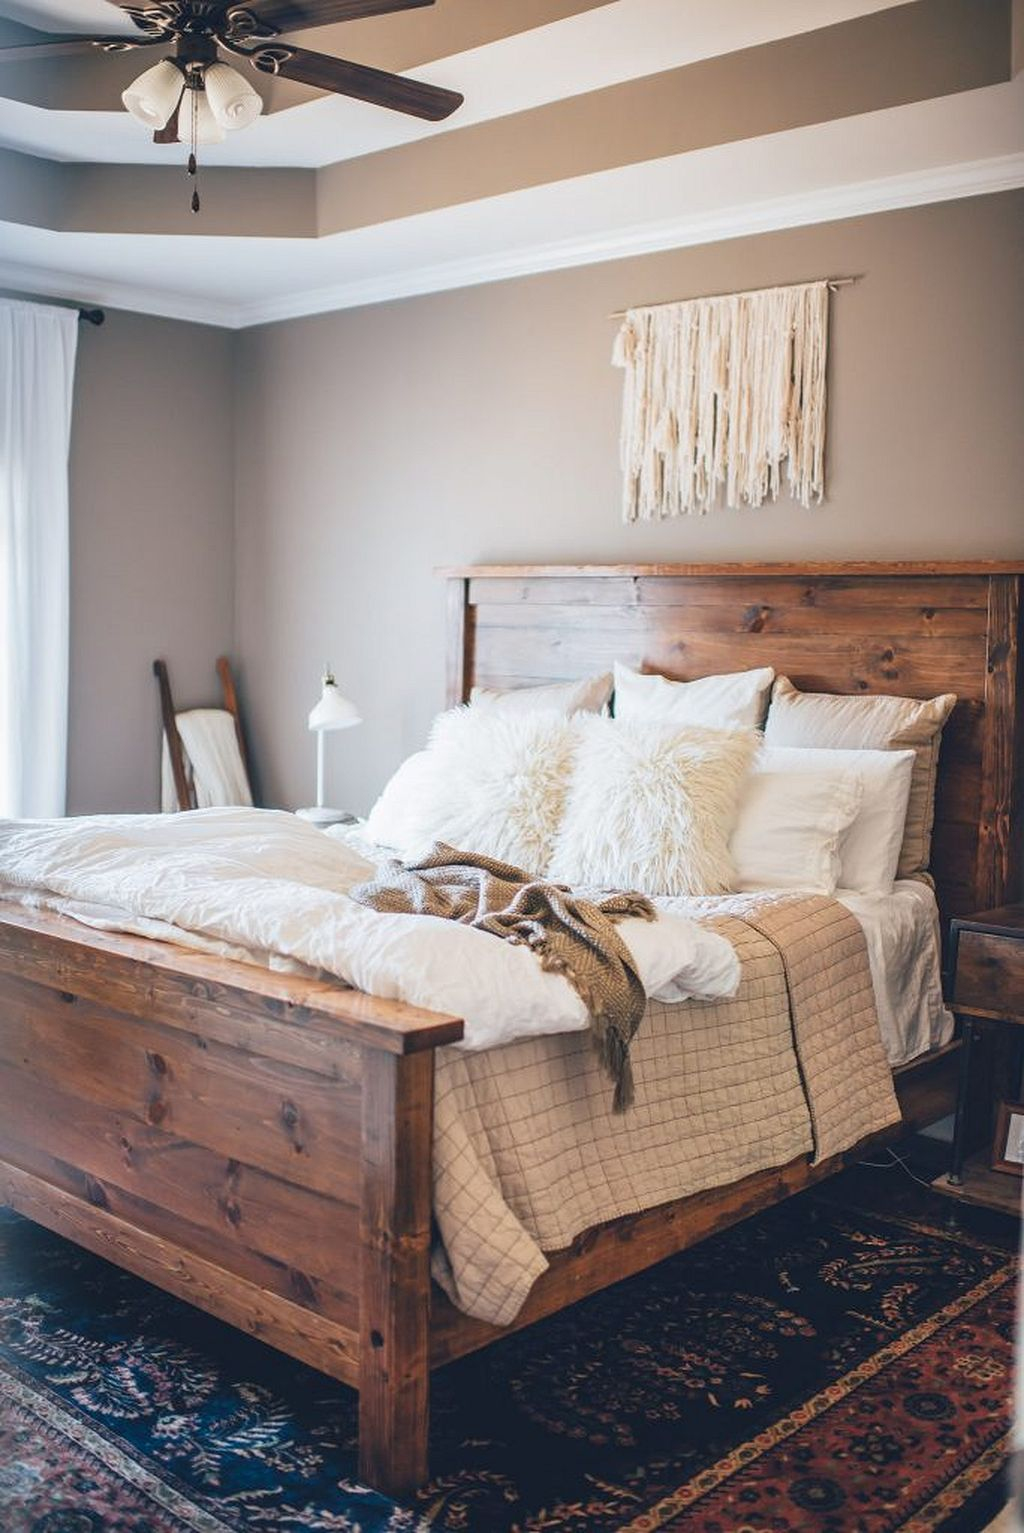 50 Rustic Master Bedroom Ideas Rustic master bedroom Master